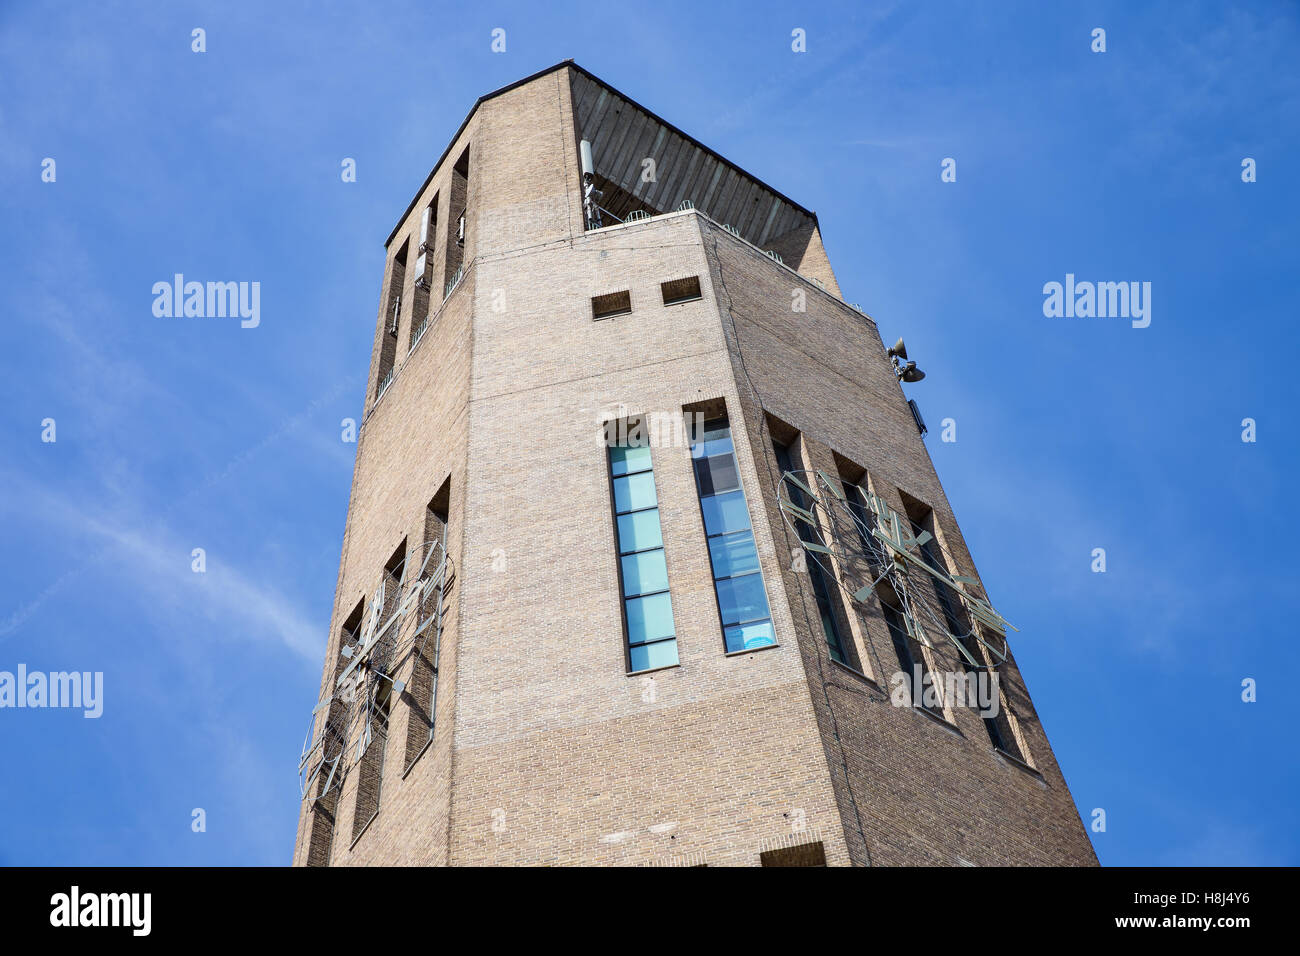 Big brick stone tower with clock in Emmeloord, the Netherlands - Stock Image